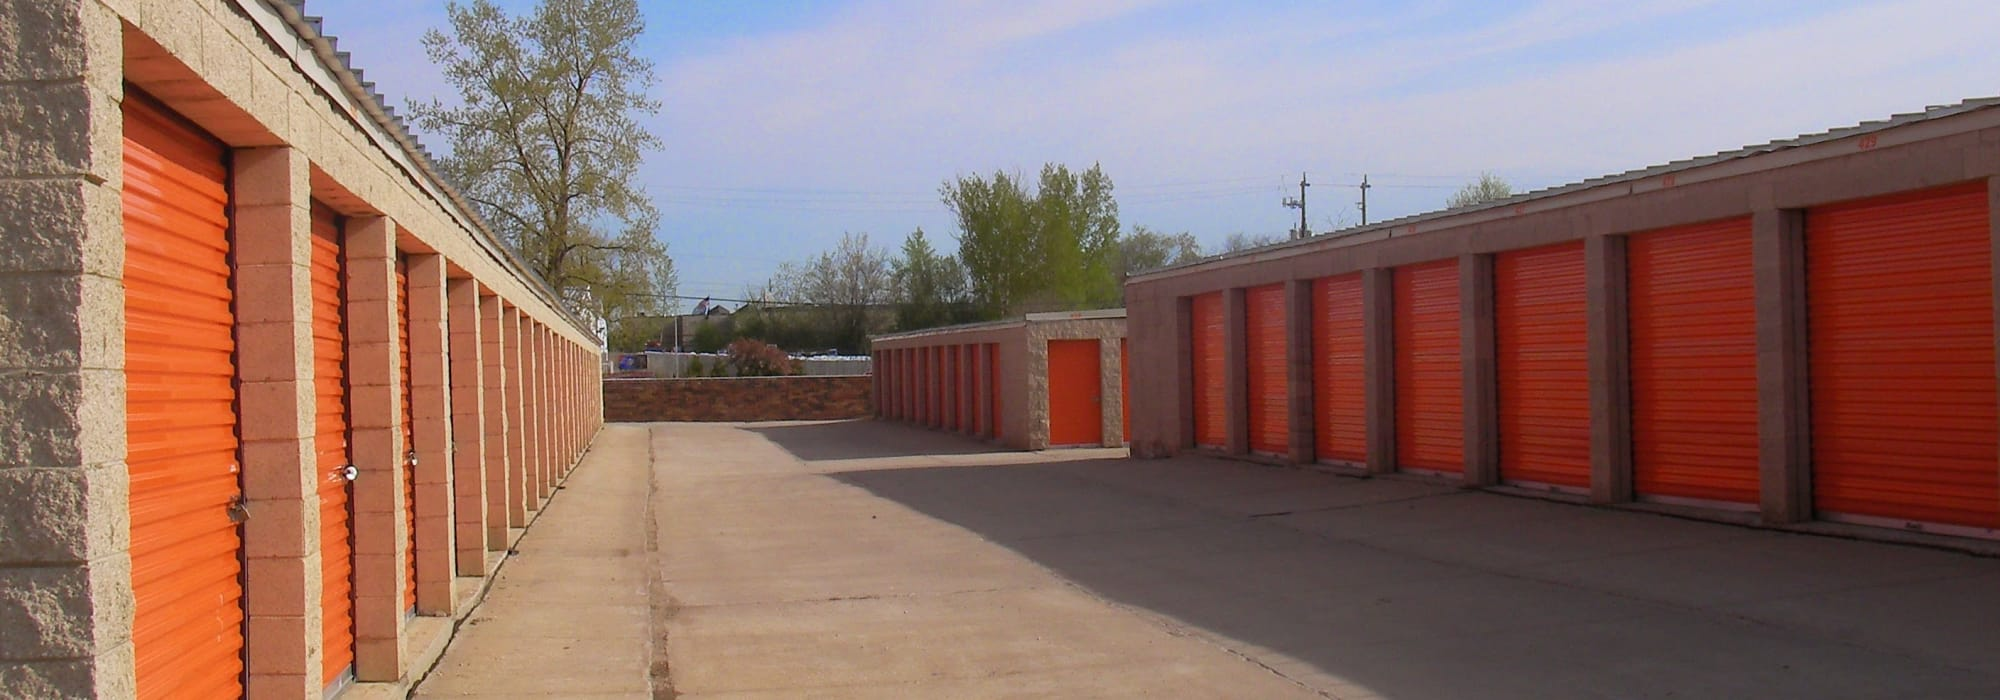 Barth Storage - 60th Ave in Kenosha, Wisconsin